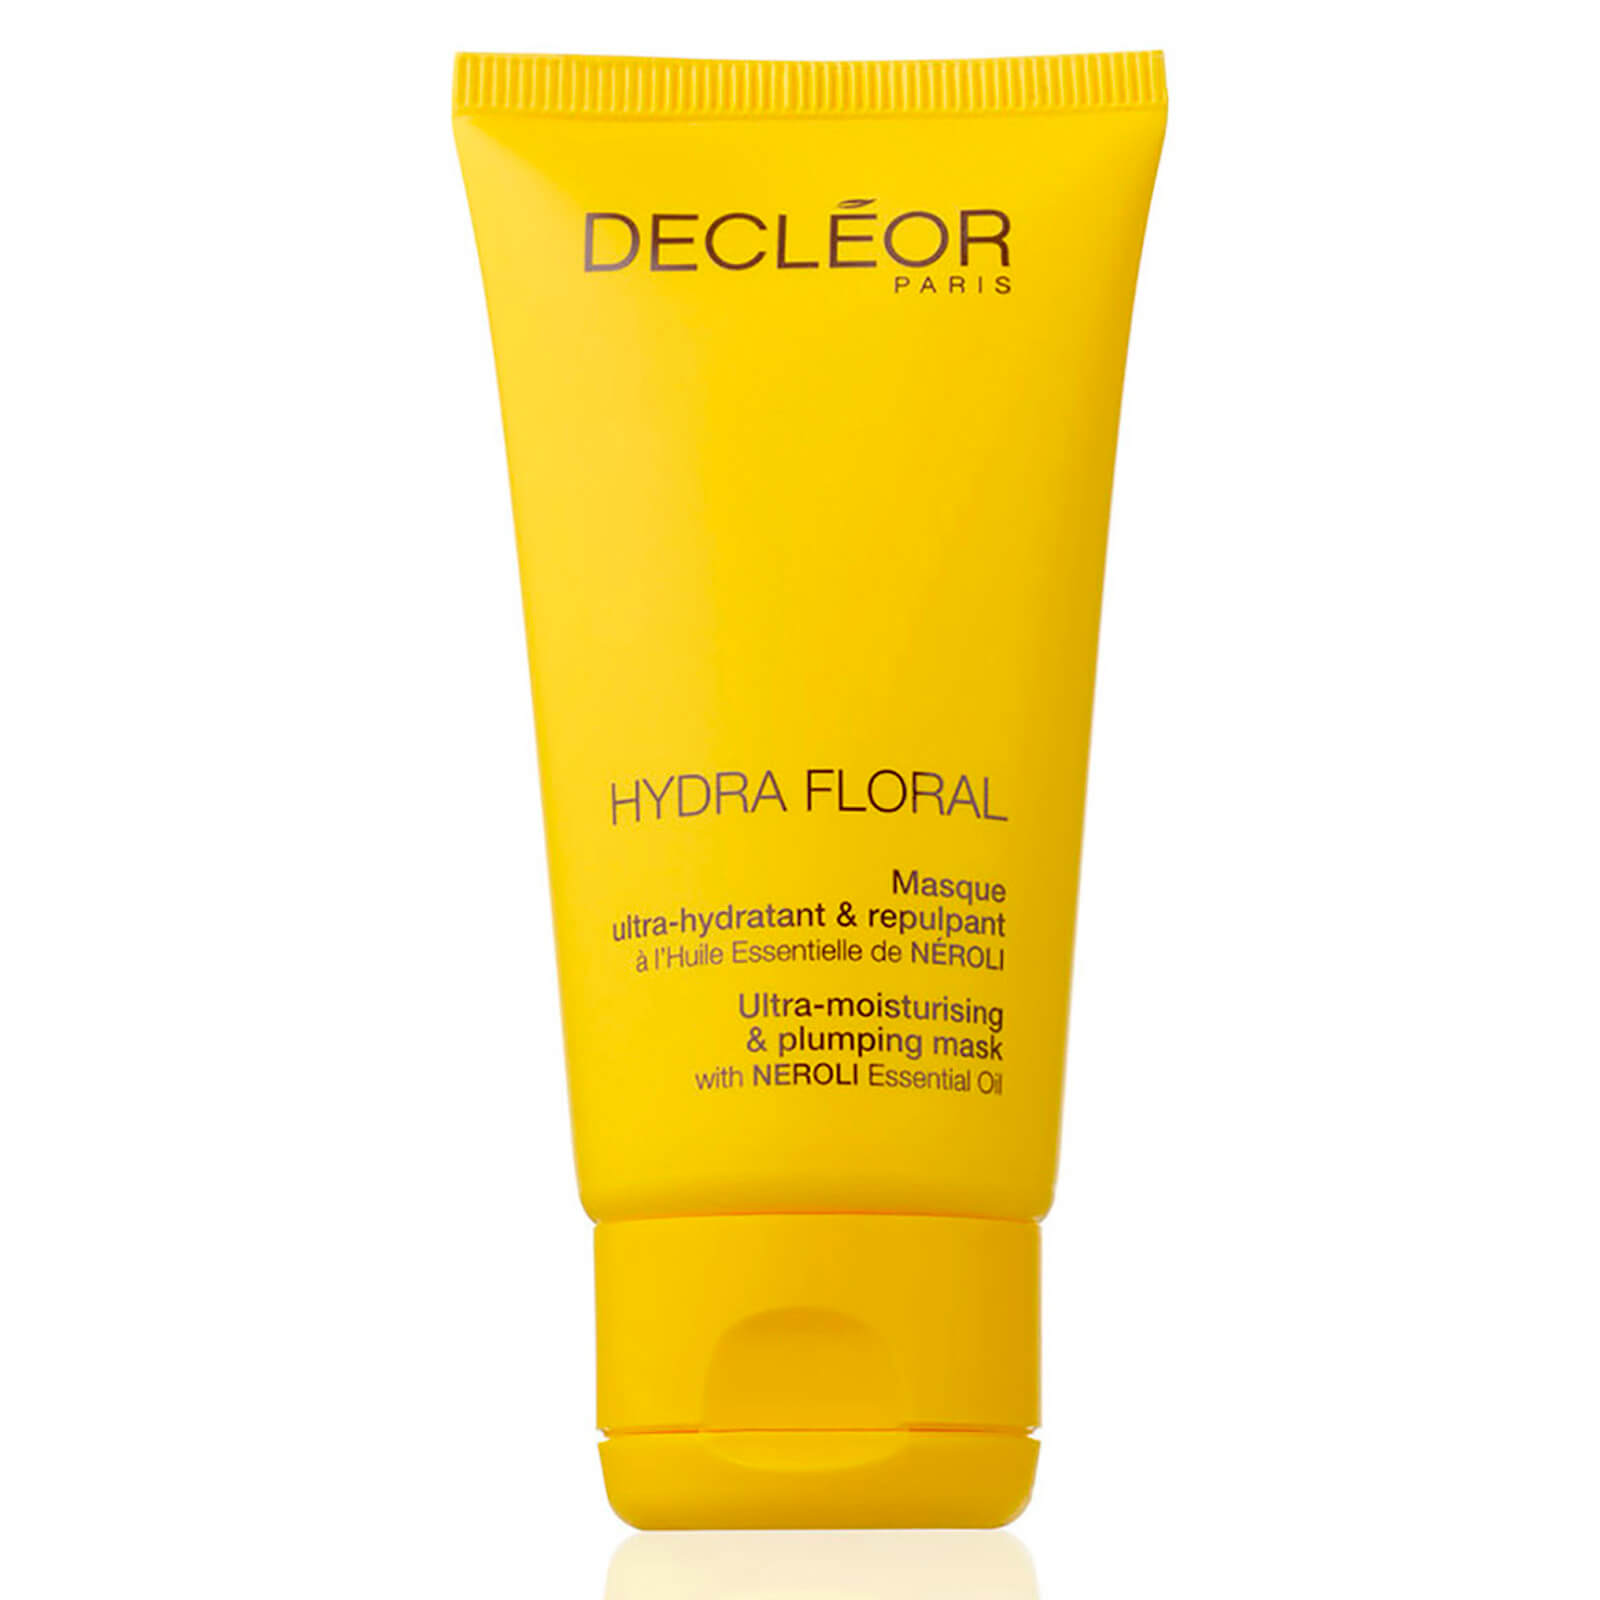 decleor hydra floral mask makeupalley